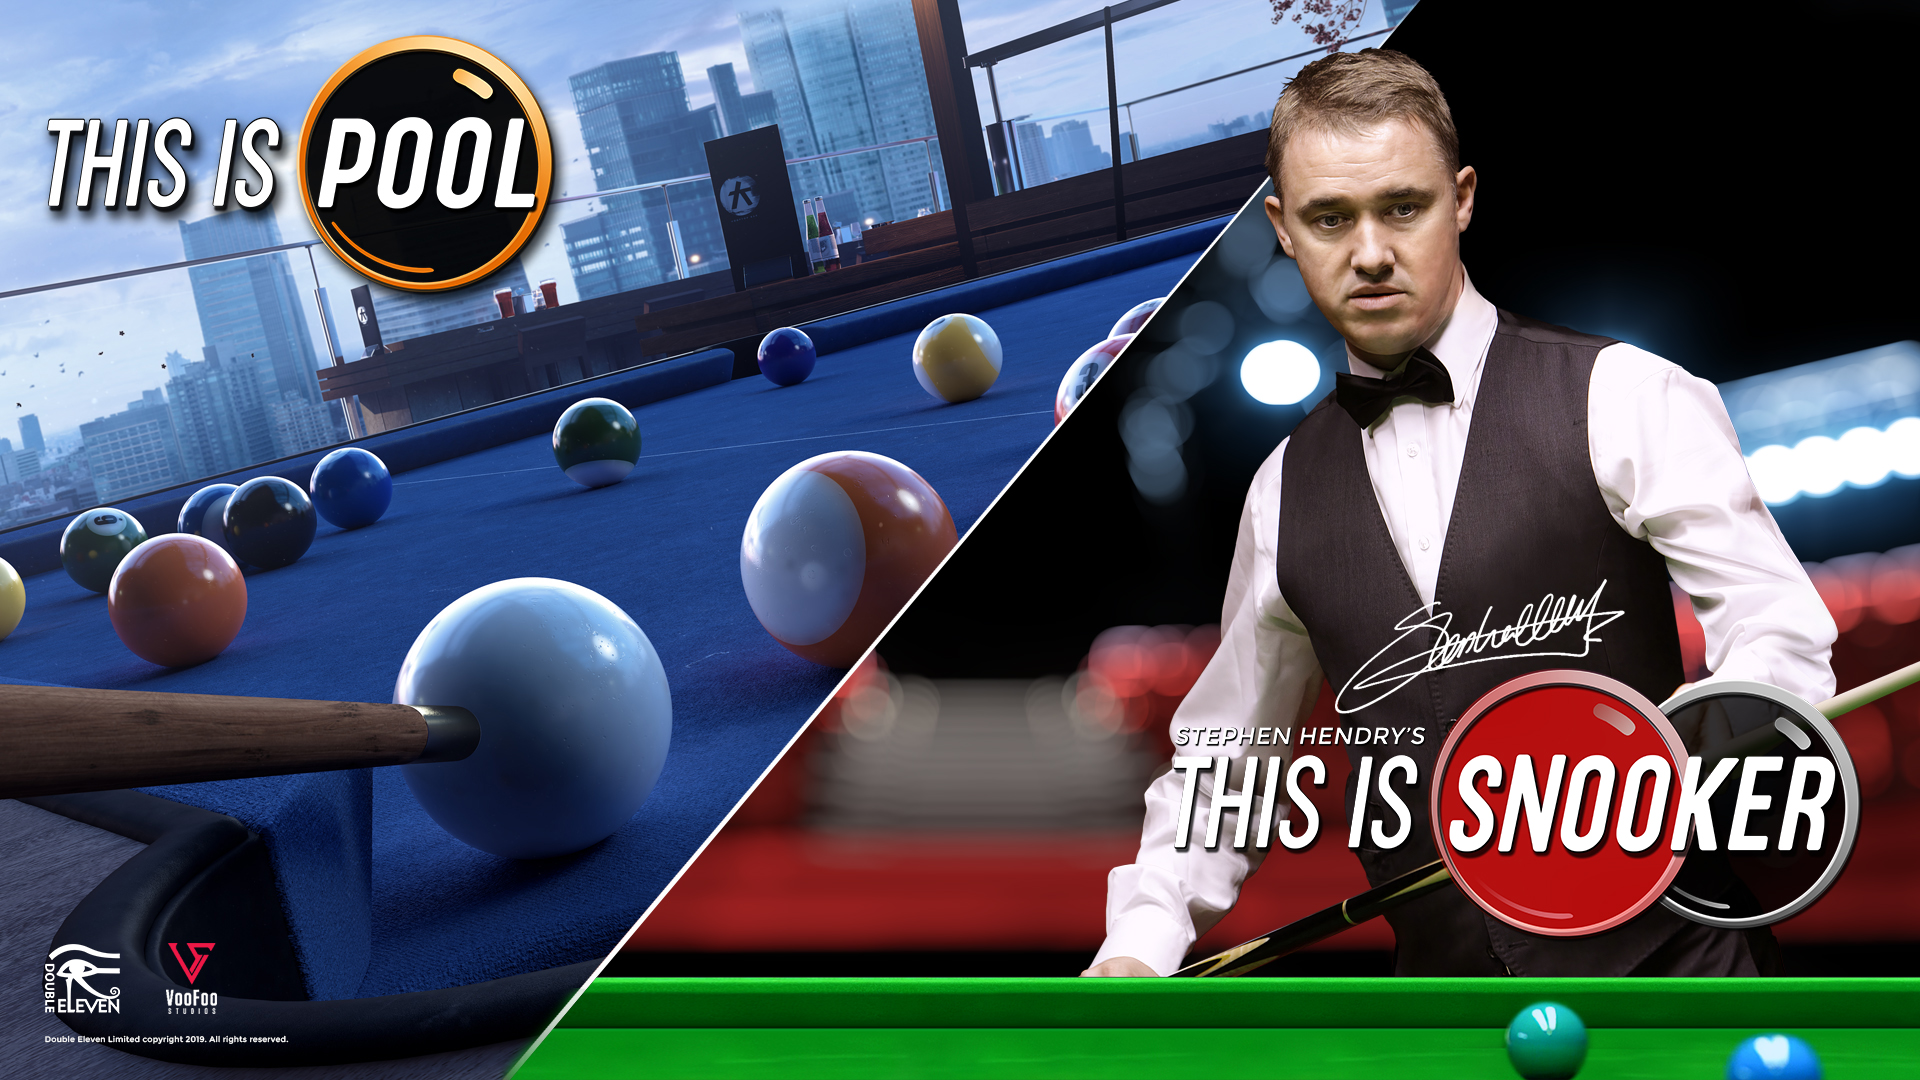 VooFoo, This Is Snooker